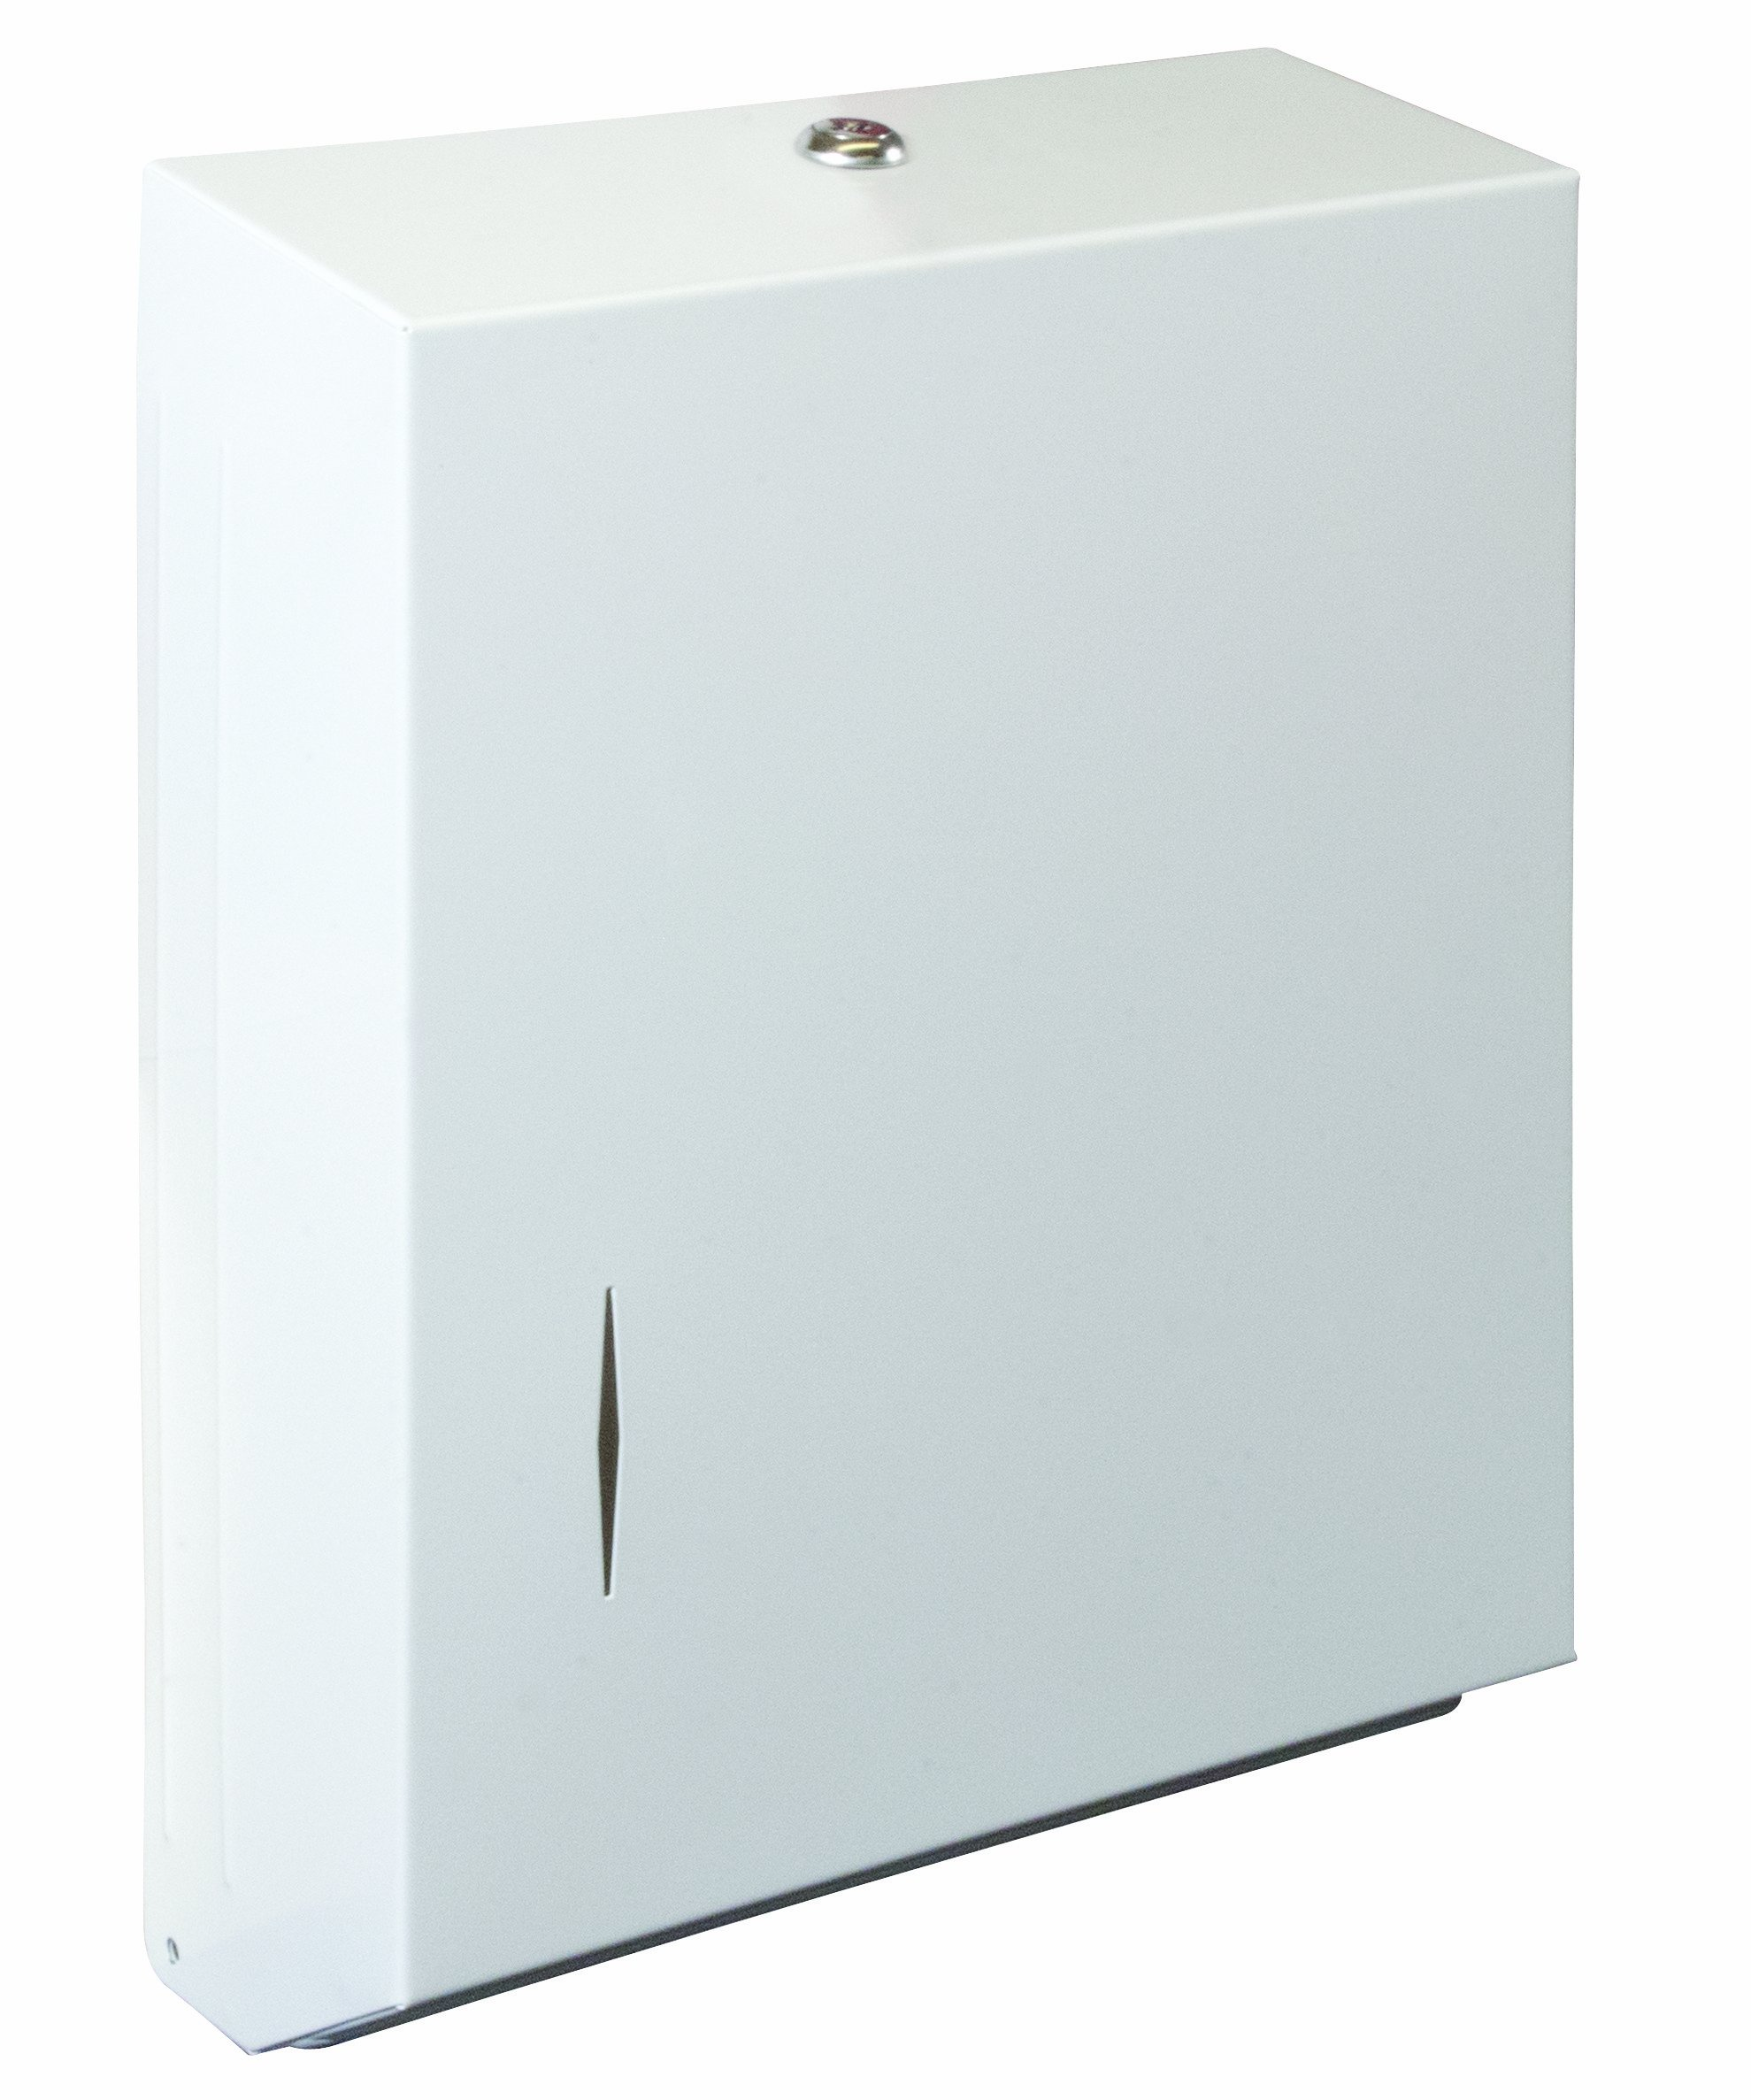 Bradley 250-150000 Stainless Steel Surface Mounted Towel Dispenser, 11'' Width x 15-5/16'' Height x 4'' Depth